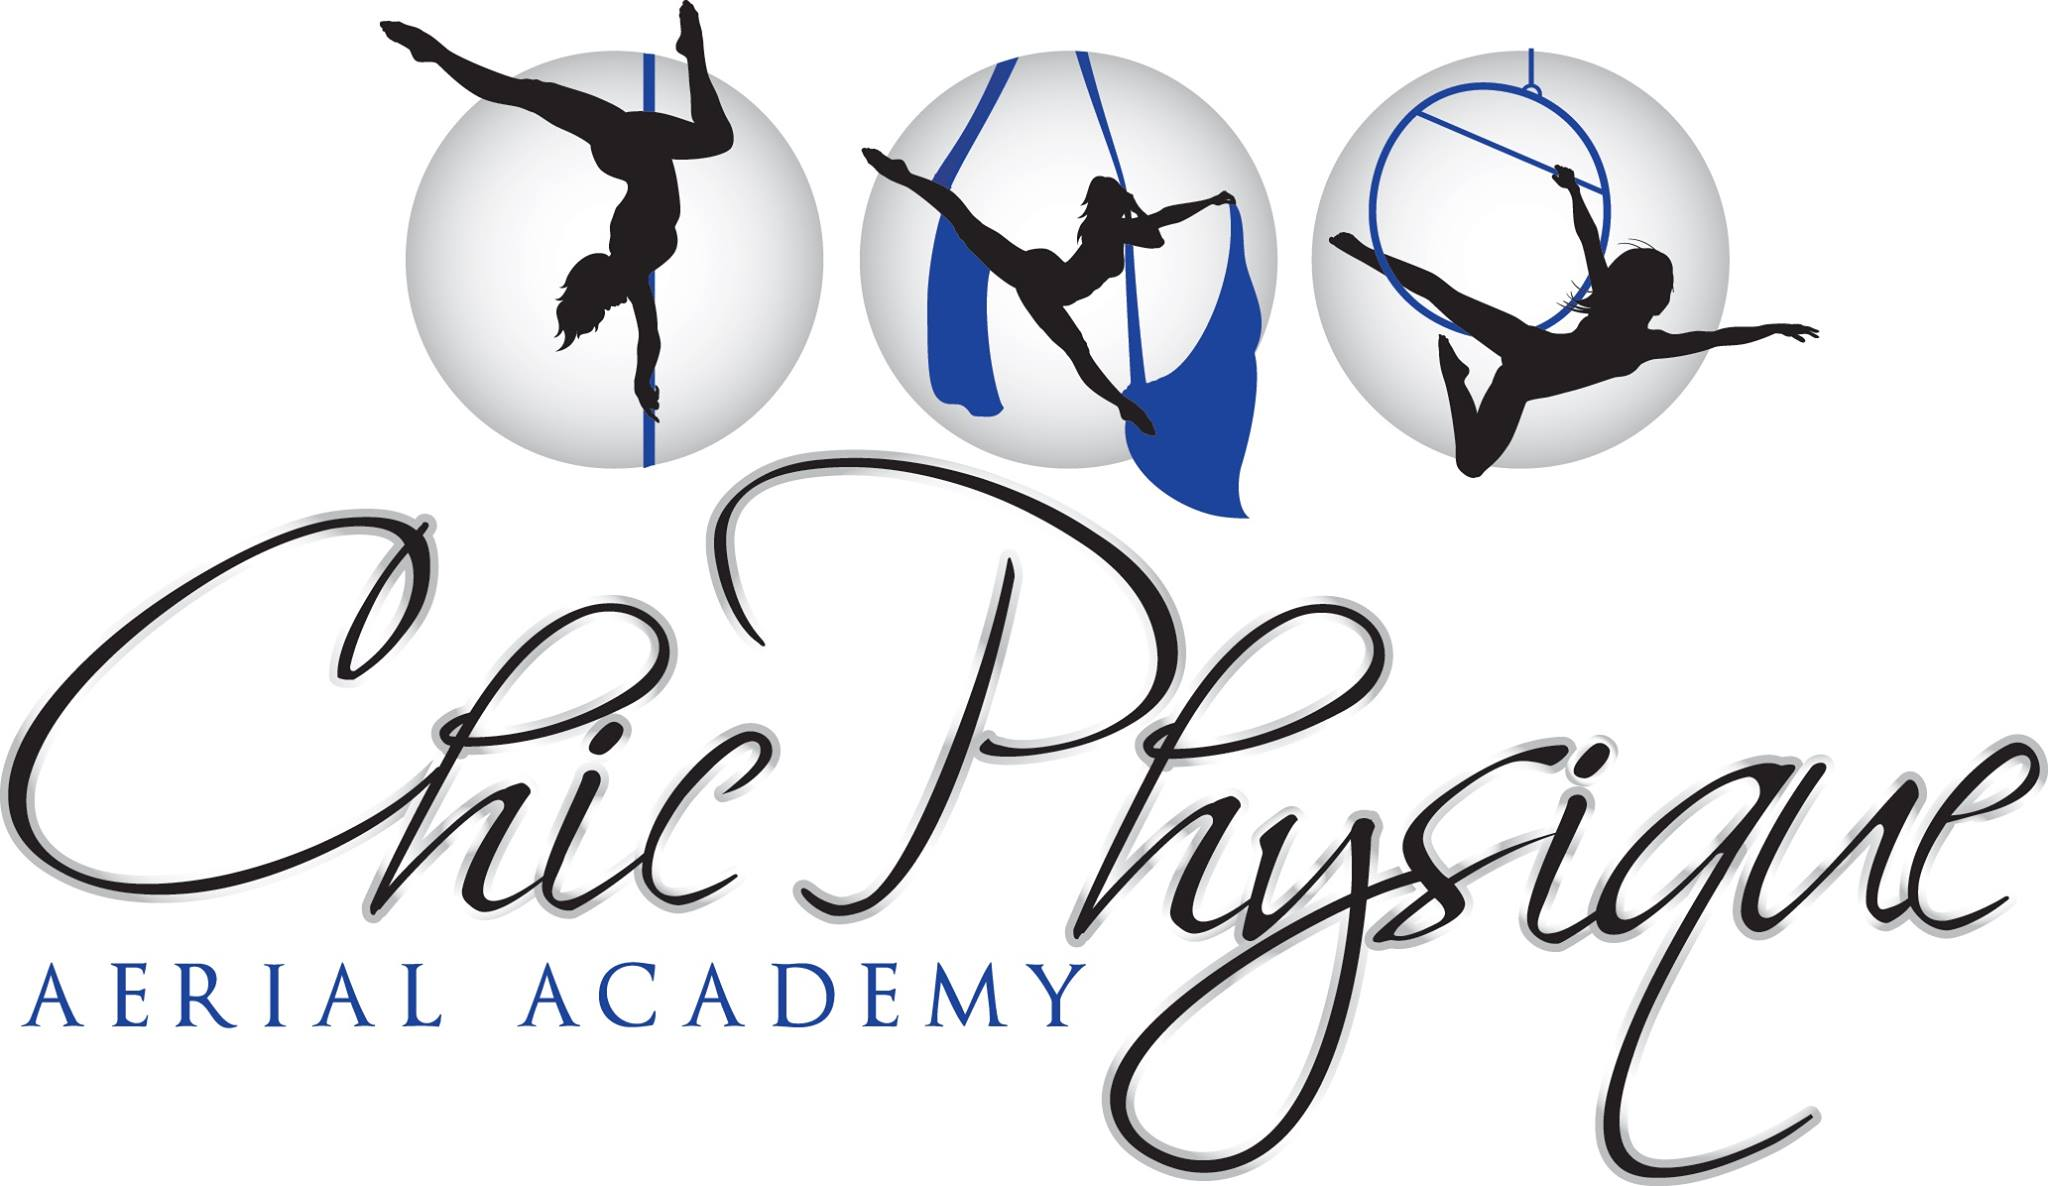 Chic Physique Aerial Academy